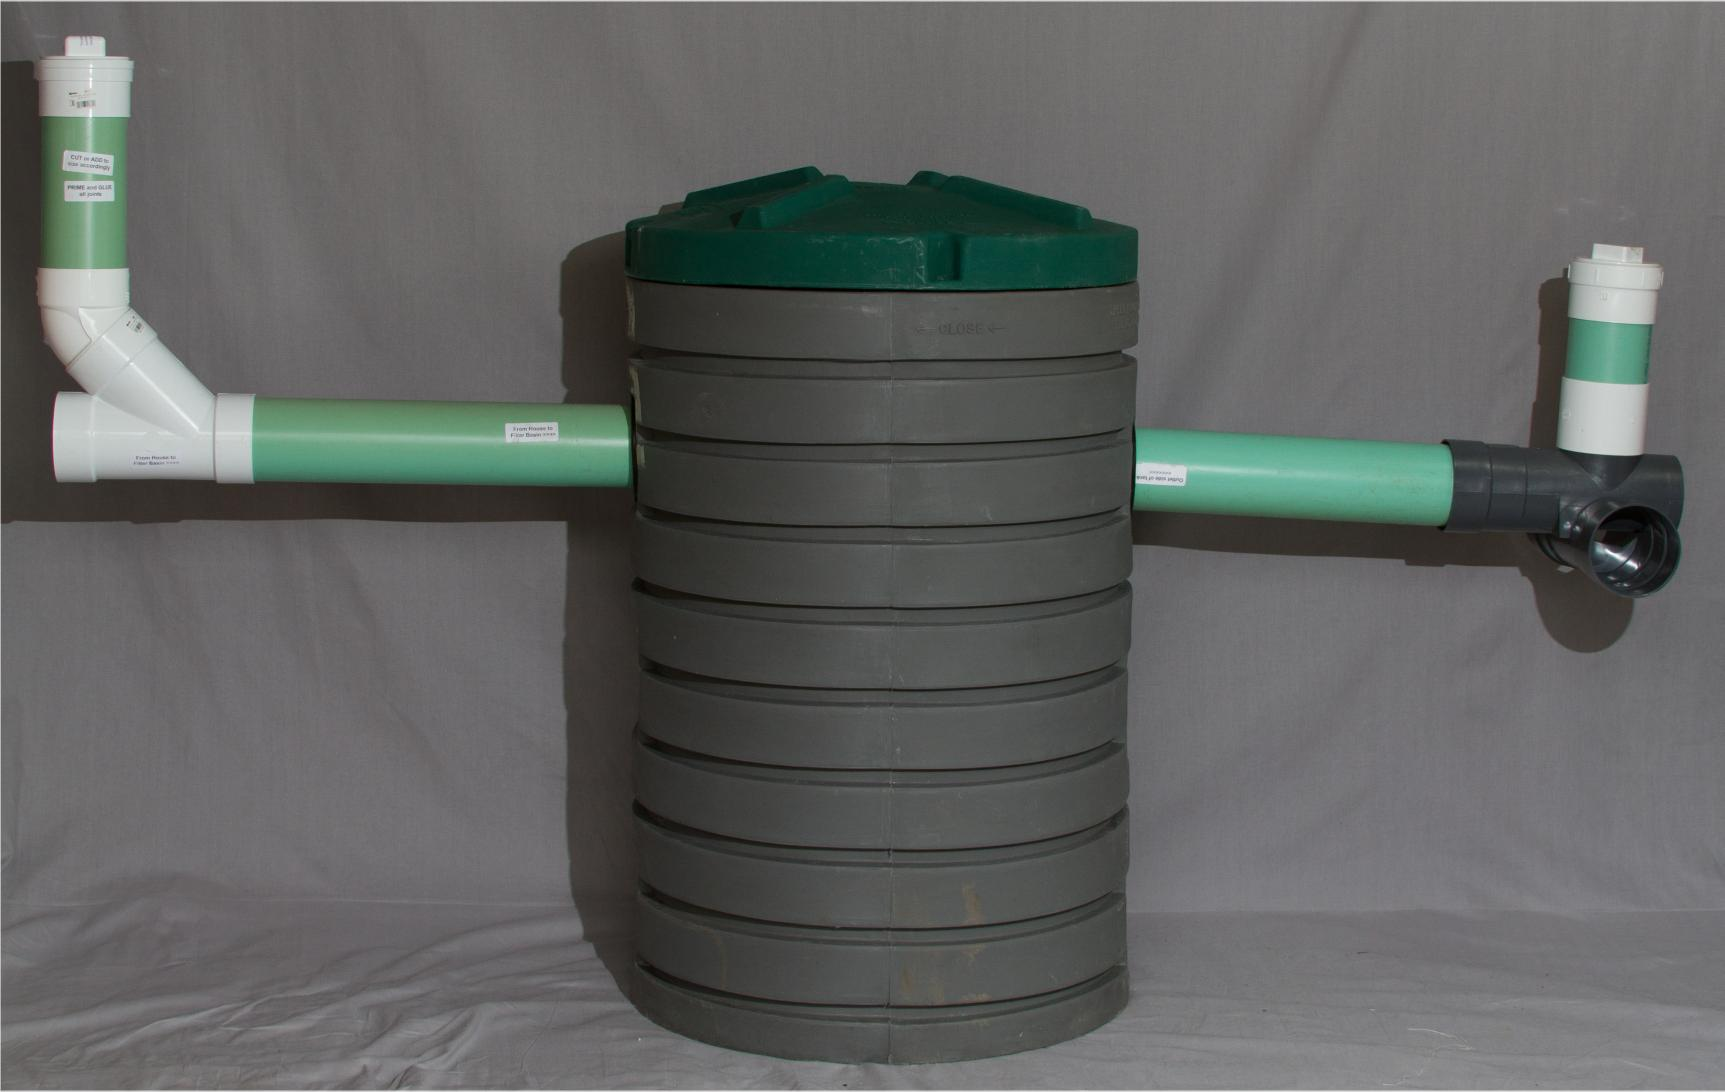 Septic Tank Effluent Filter Kits For Any Home Sewage Tank